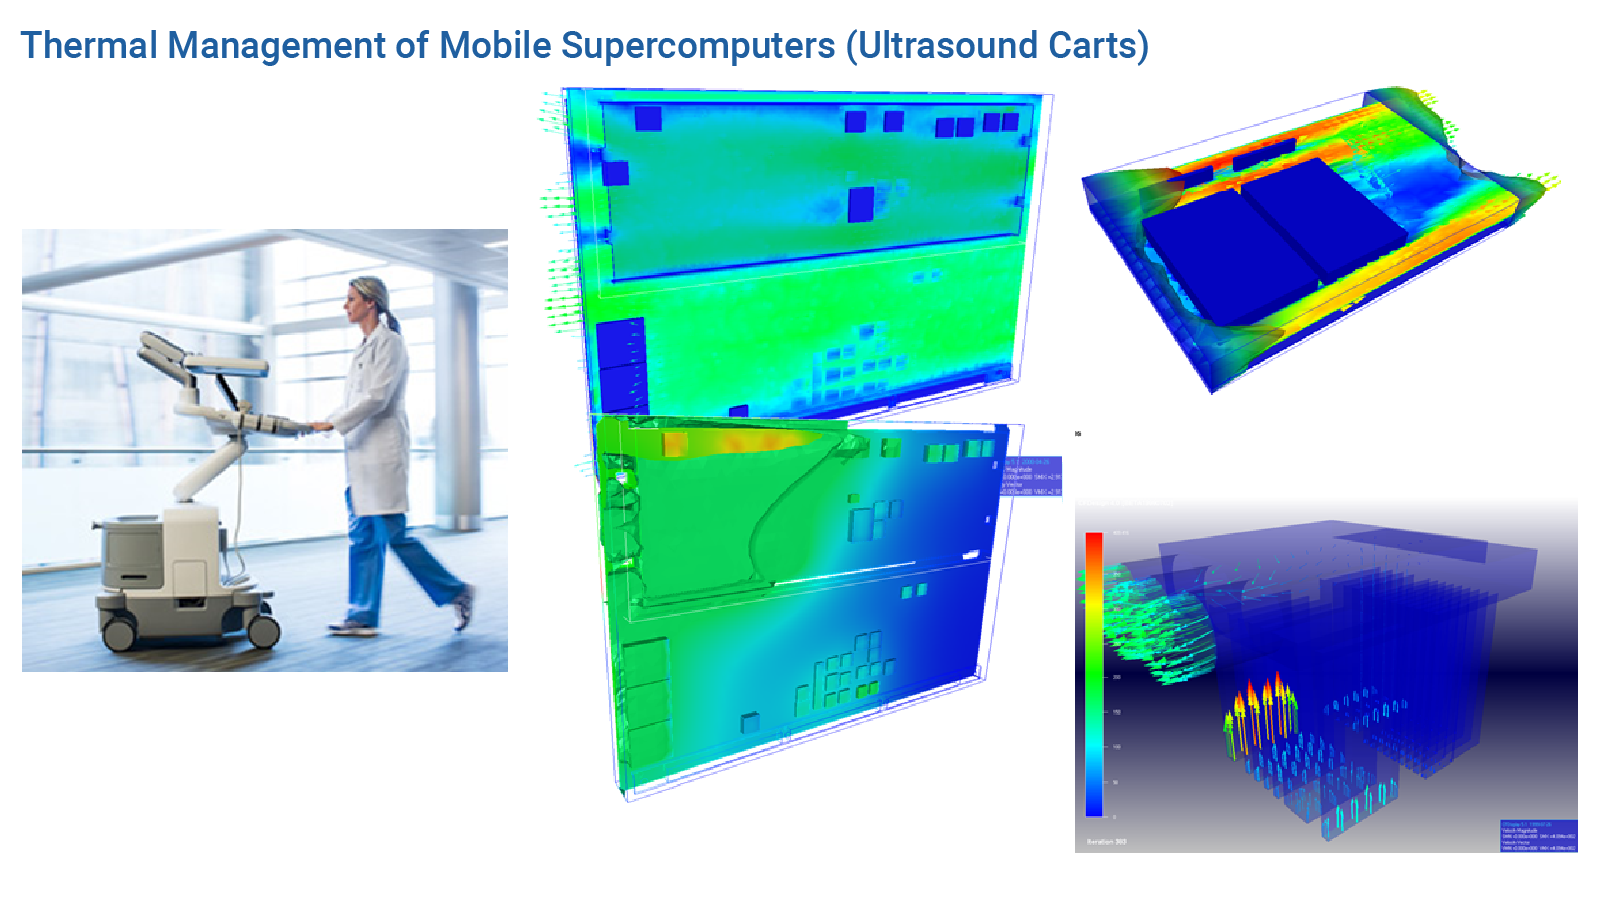 Thermal Management of Mobile Supercomputers (Ultrasound Carts) - Predictive Engineering CFD Consulting Services